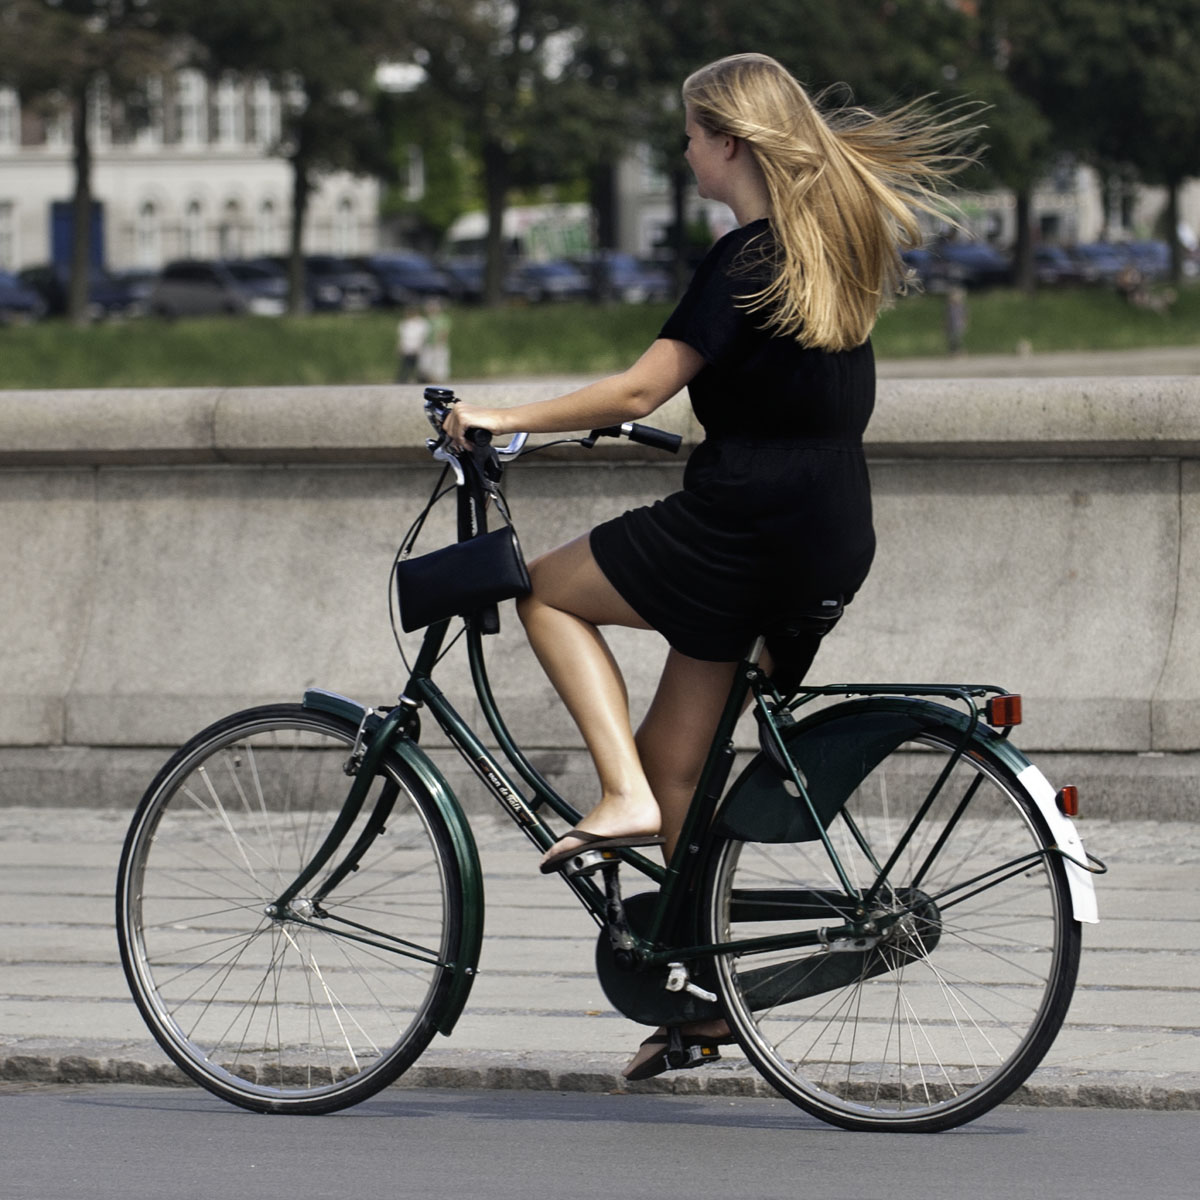 Girl commuting to work or school by bike